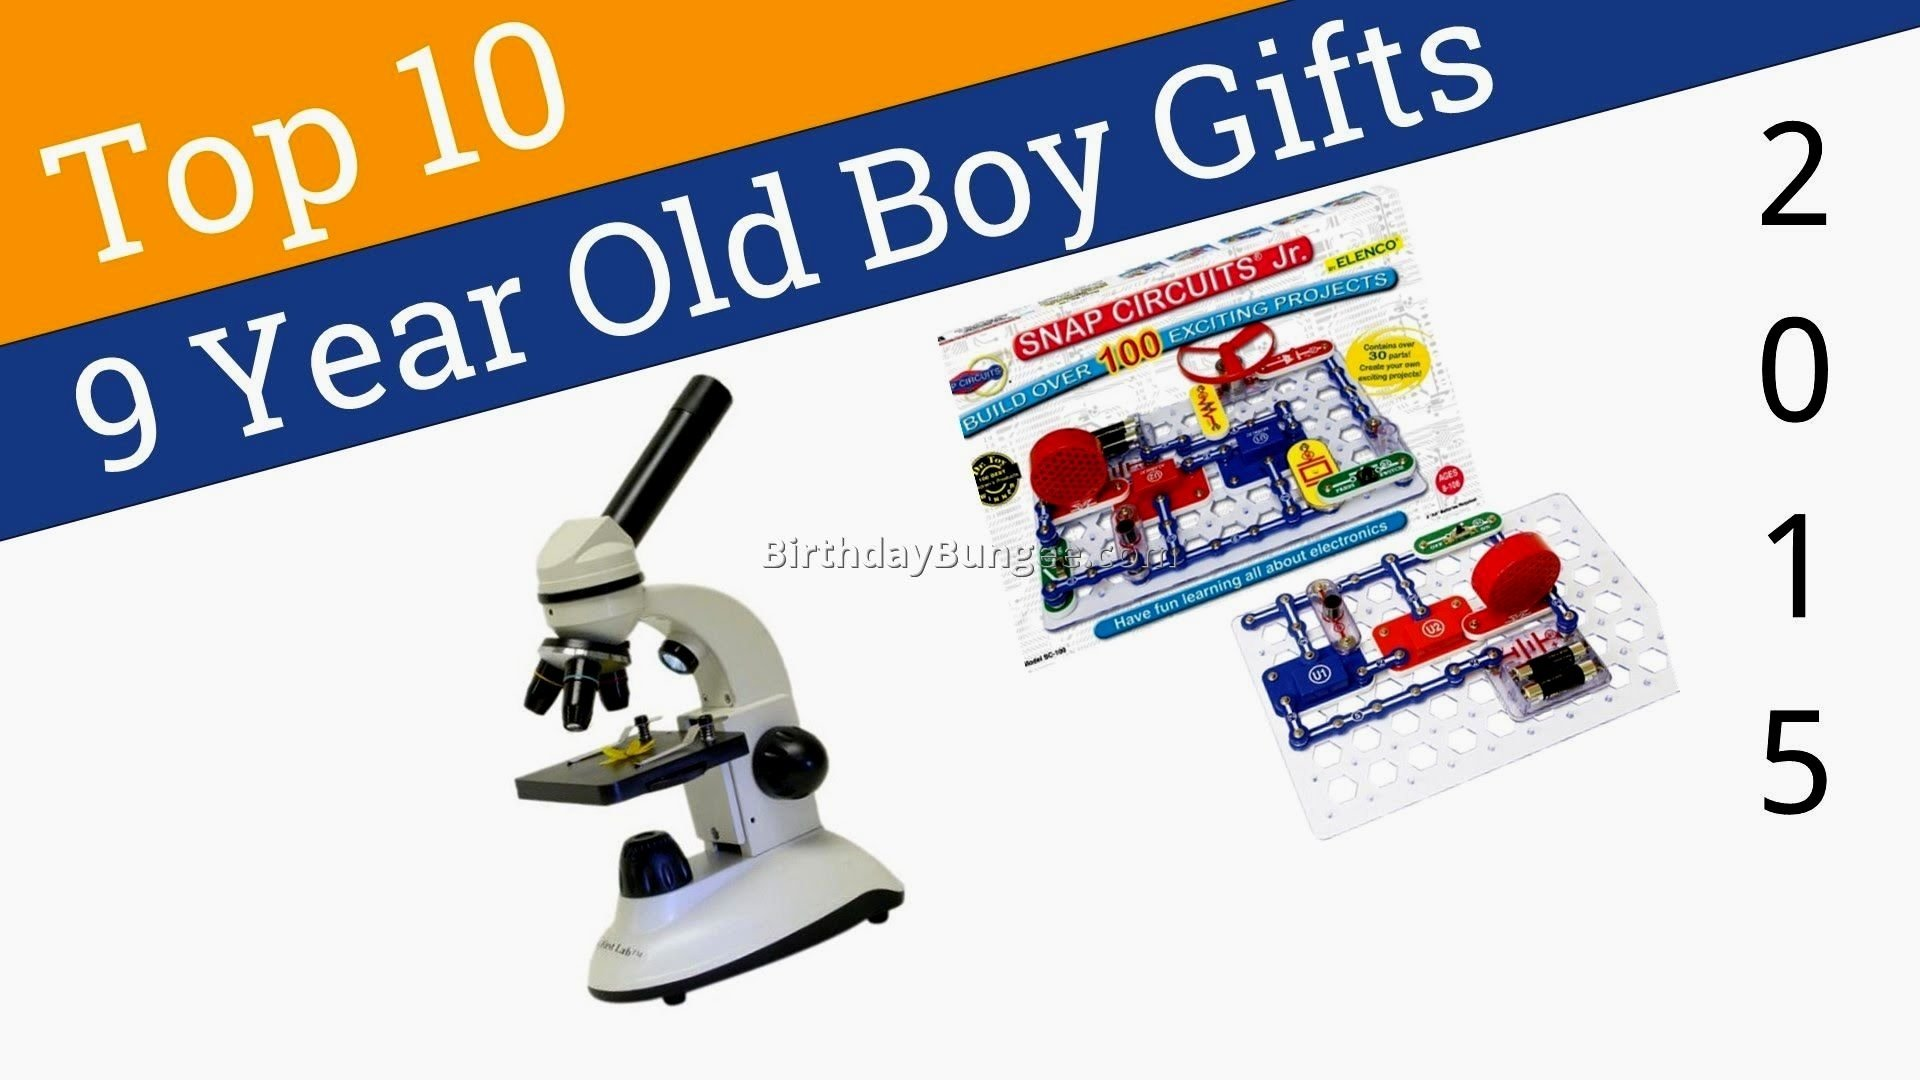 10 Attractive Birthday Gift Ideas For 9 Year Old Boy christmas ideas for 9 year old boy christmas2018 1 2020